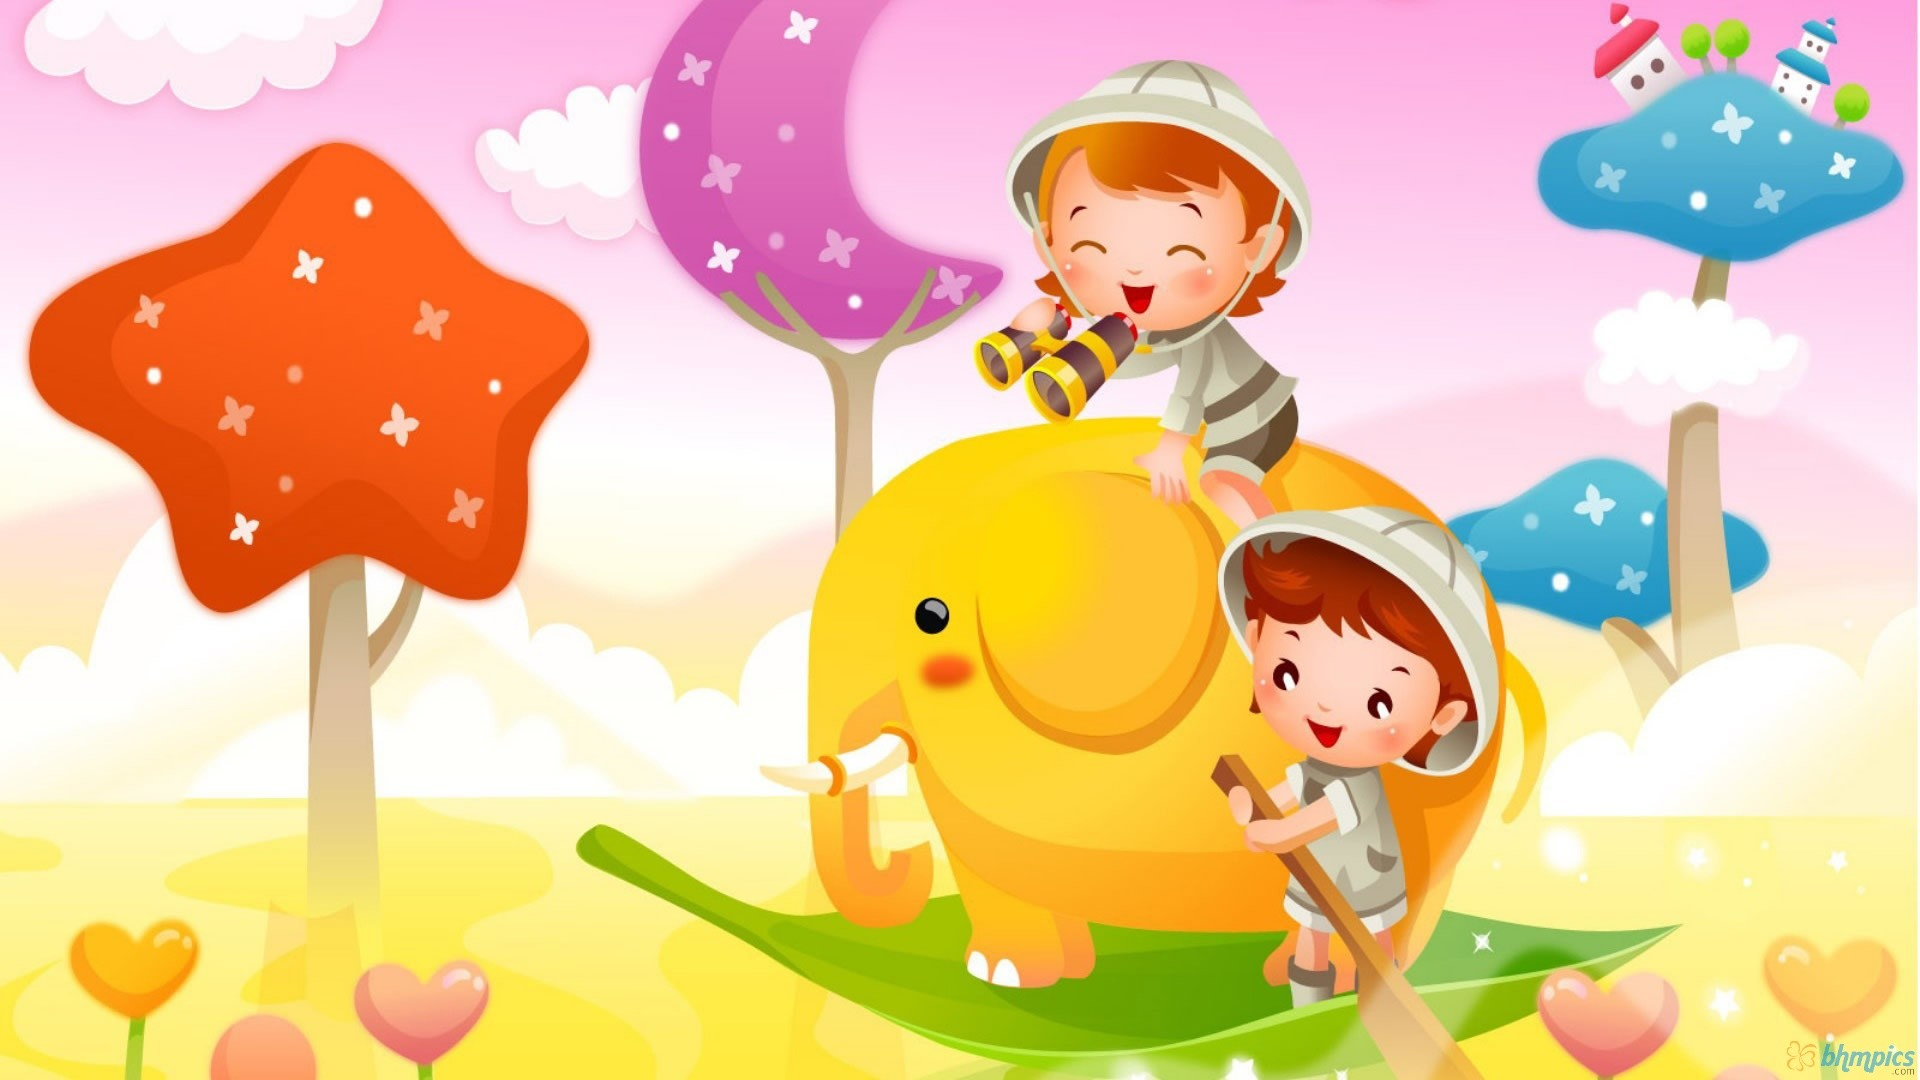 Cute Cartoon Wallpaper 25539 #7015195